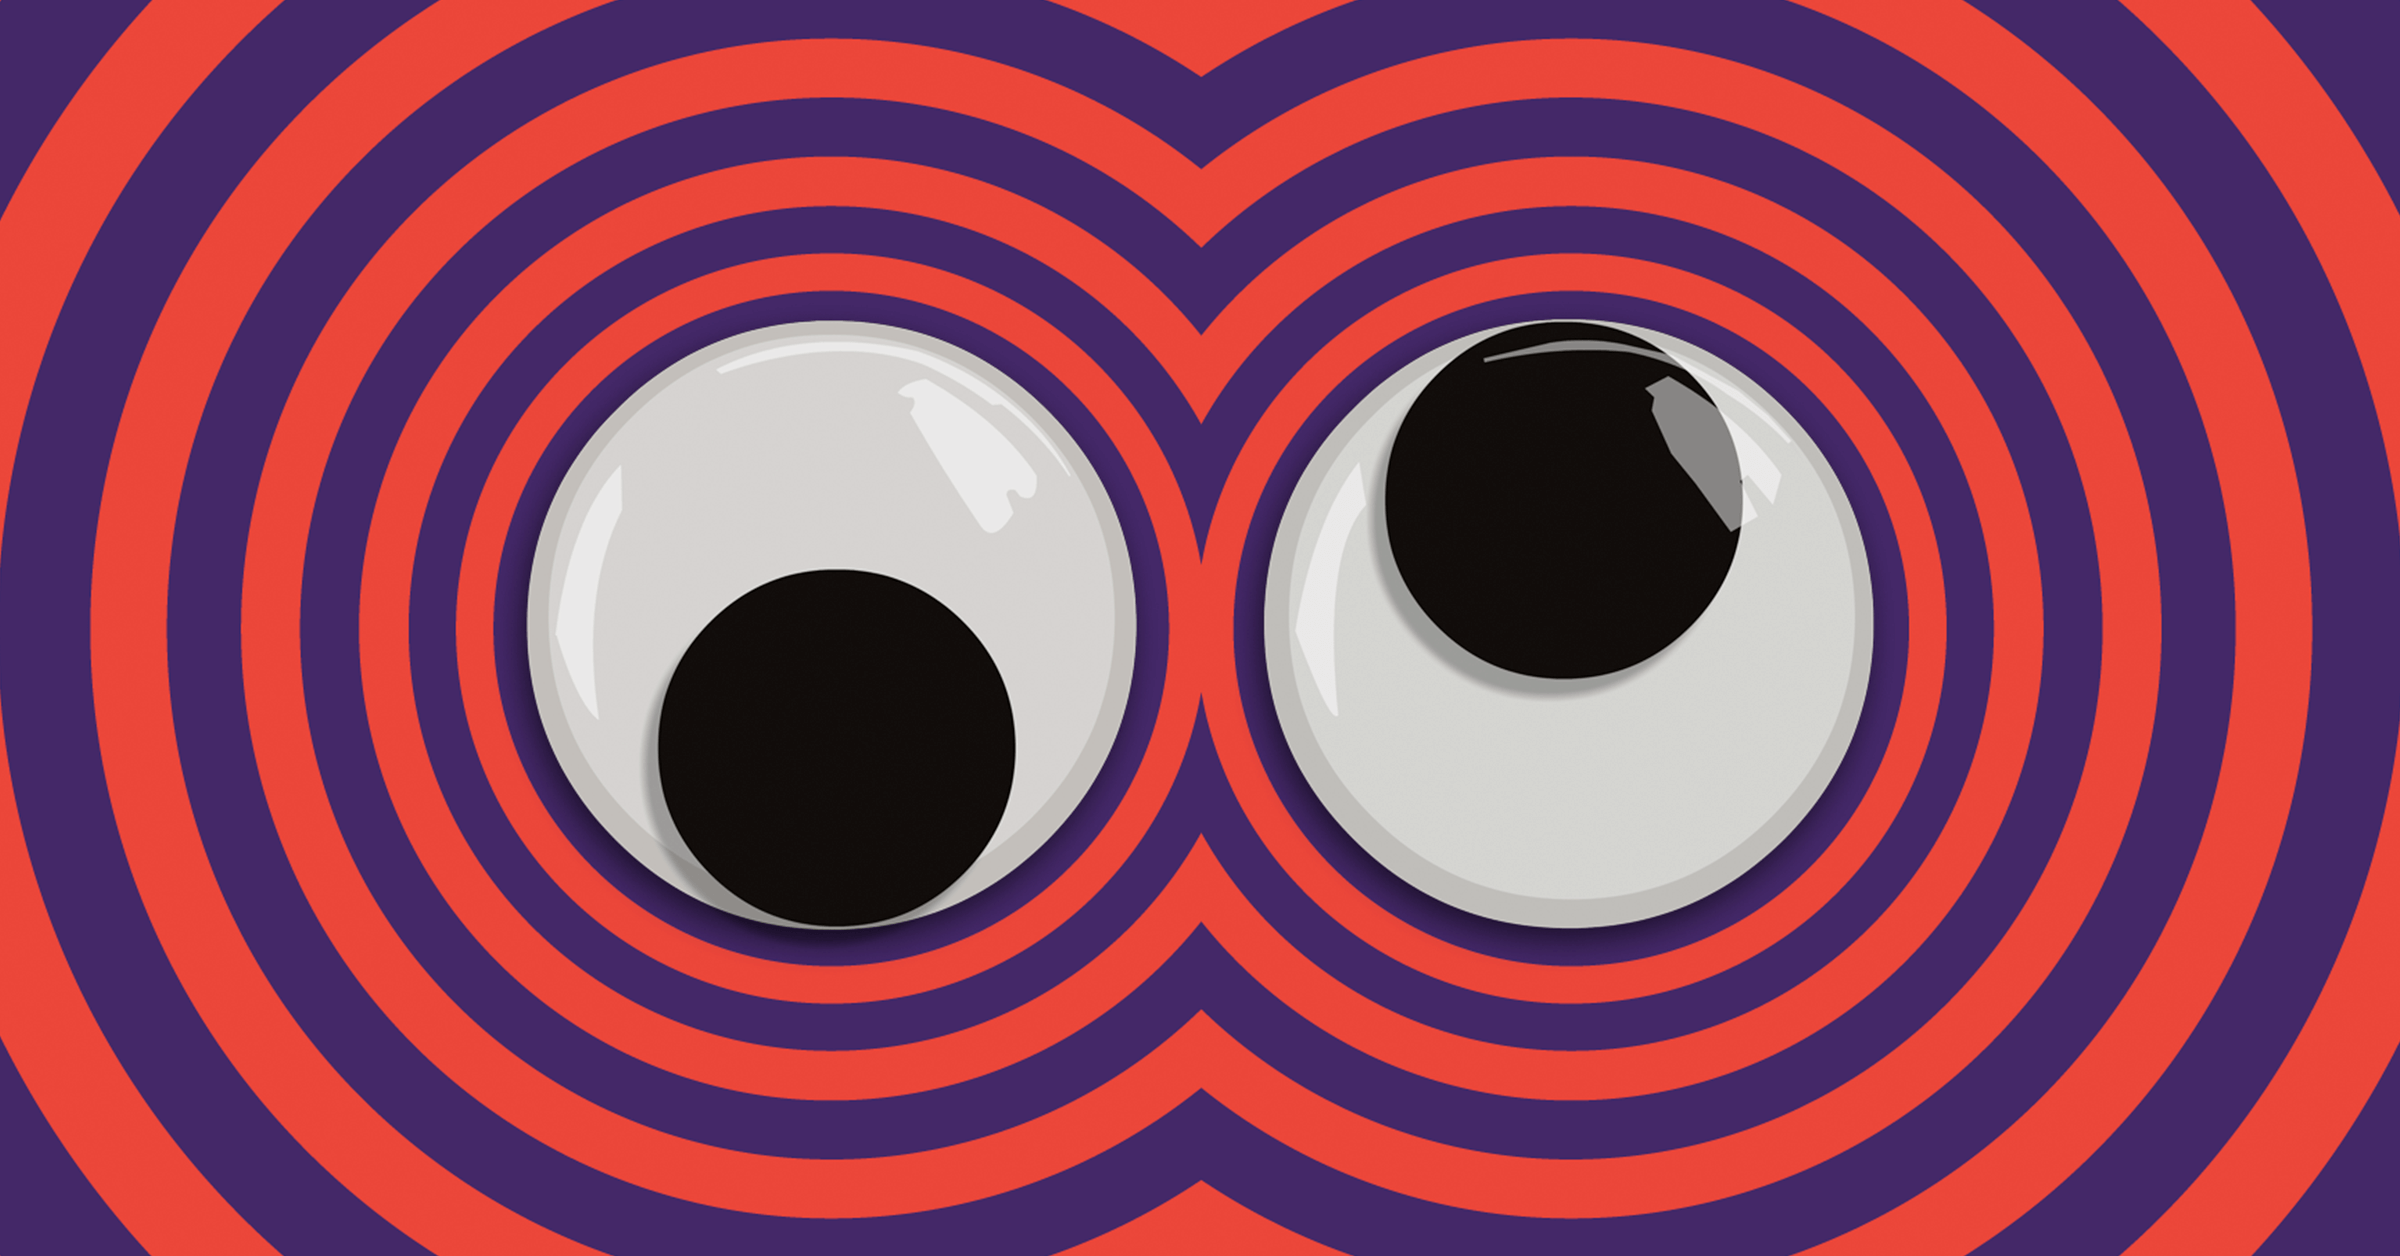 Googly Eye Animated iMessage Stickers by Ibbleobble